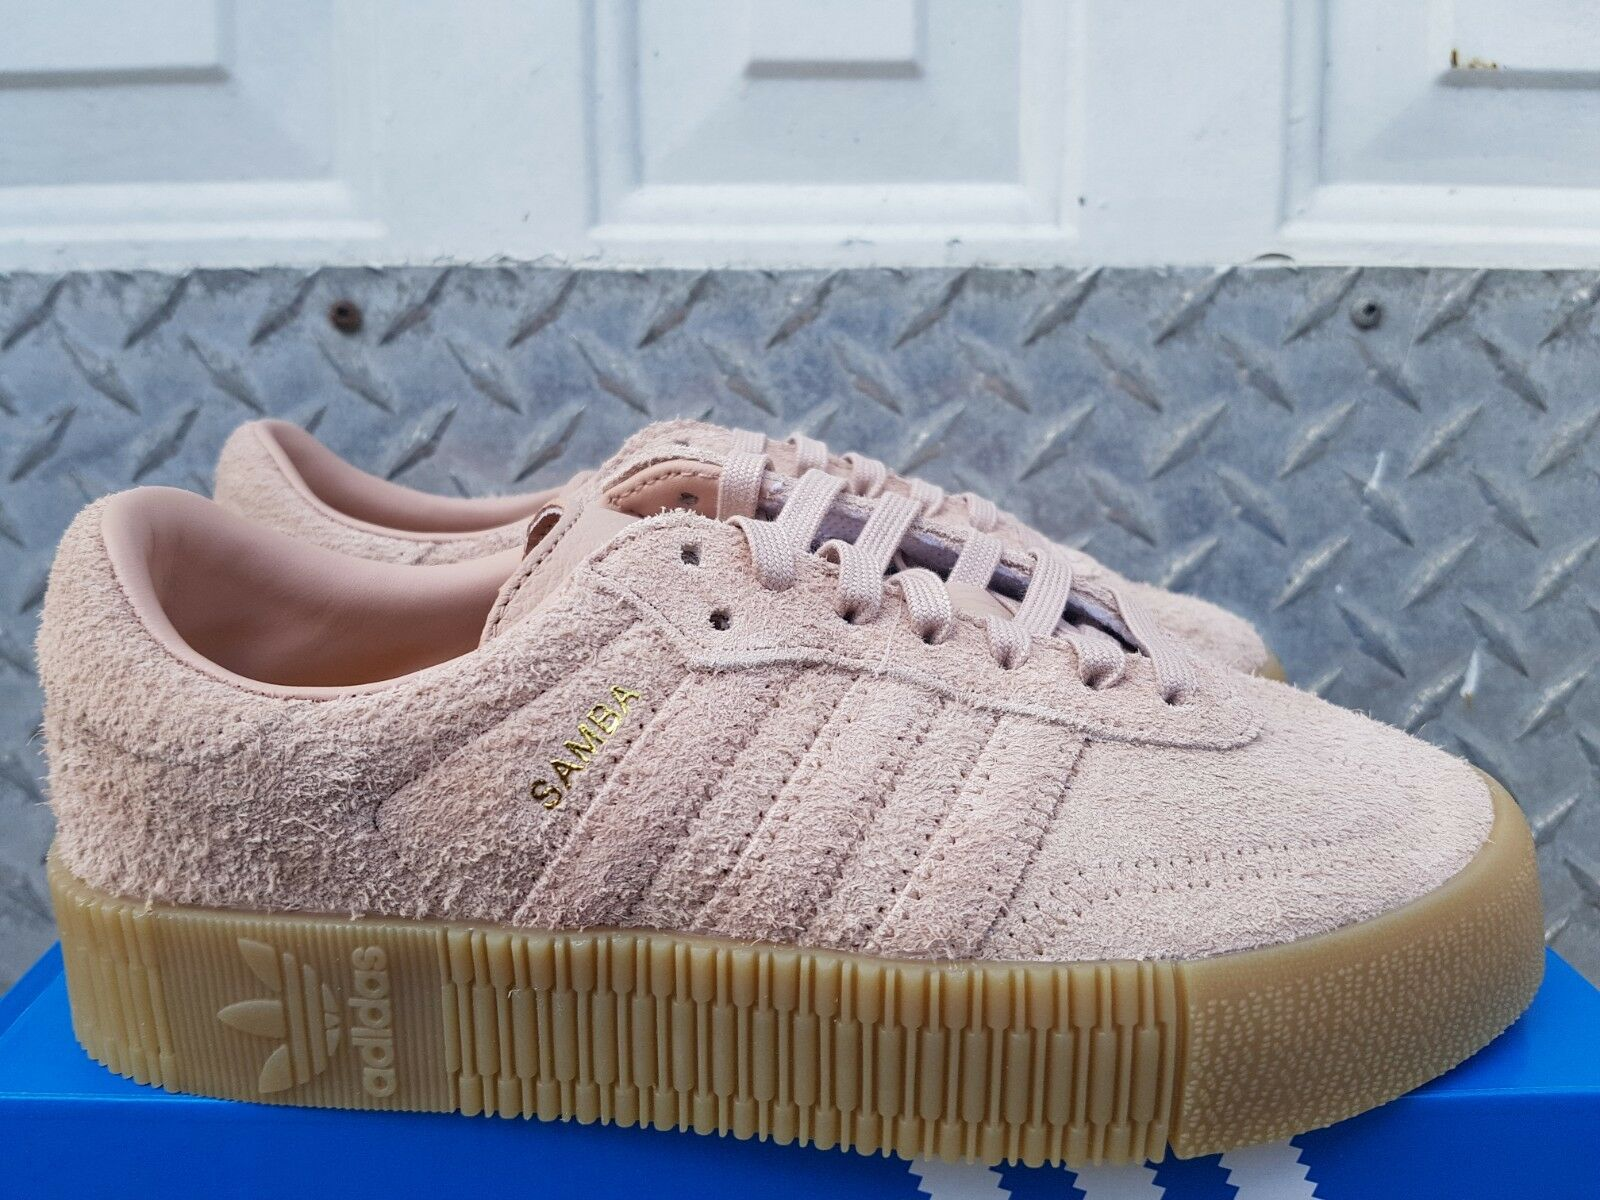 NEW IN THE BOX ADIDAS SAMBApink W B37861 SHOES FOR WOMEN